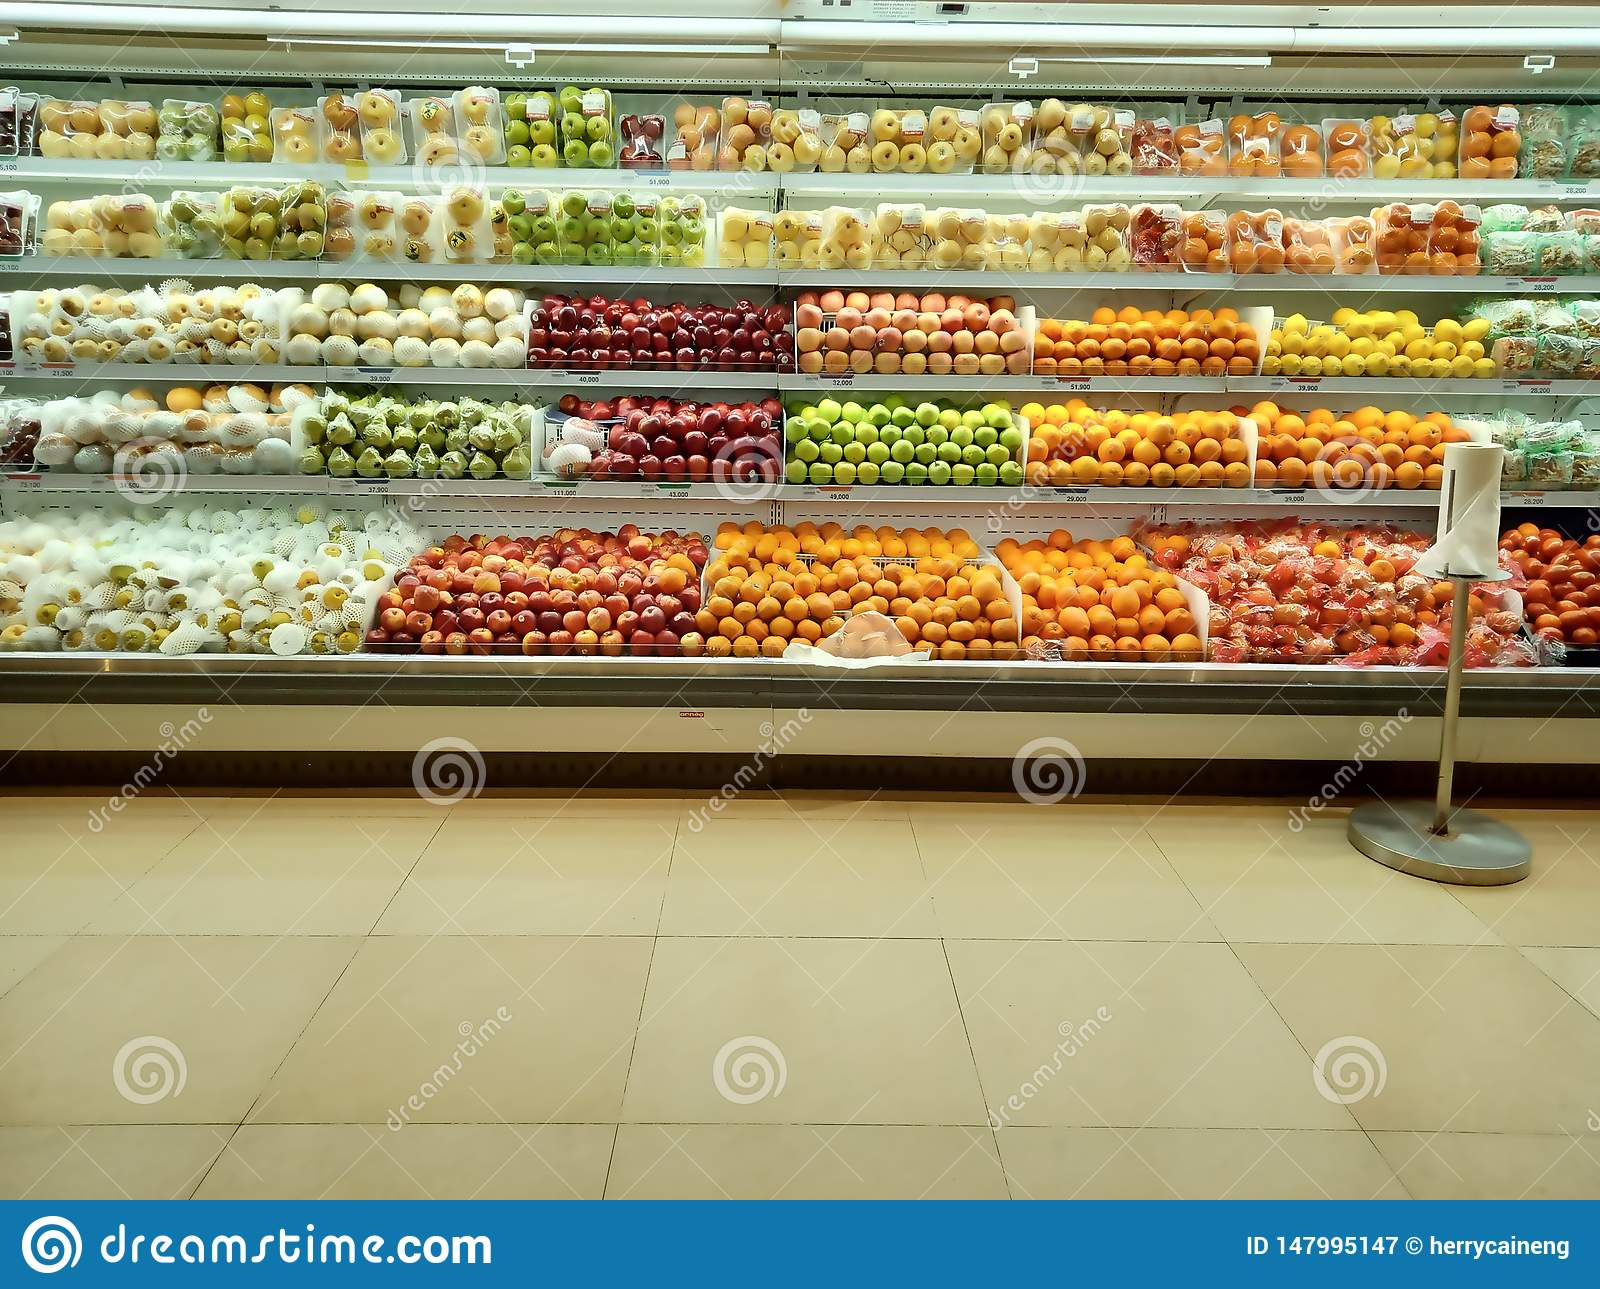 Fresh organic Vegetables and fruits on shelf in supermarket.Healthy food concept. Vitamins and minerals. supermarket product